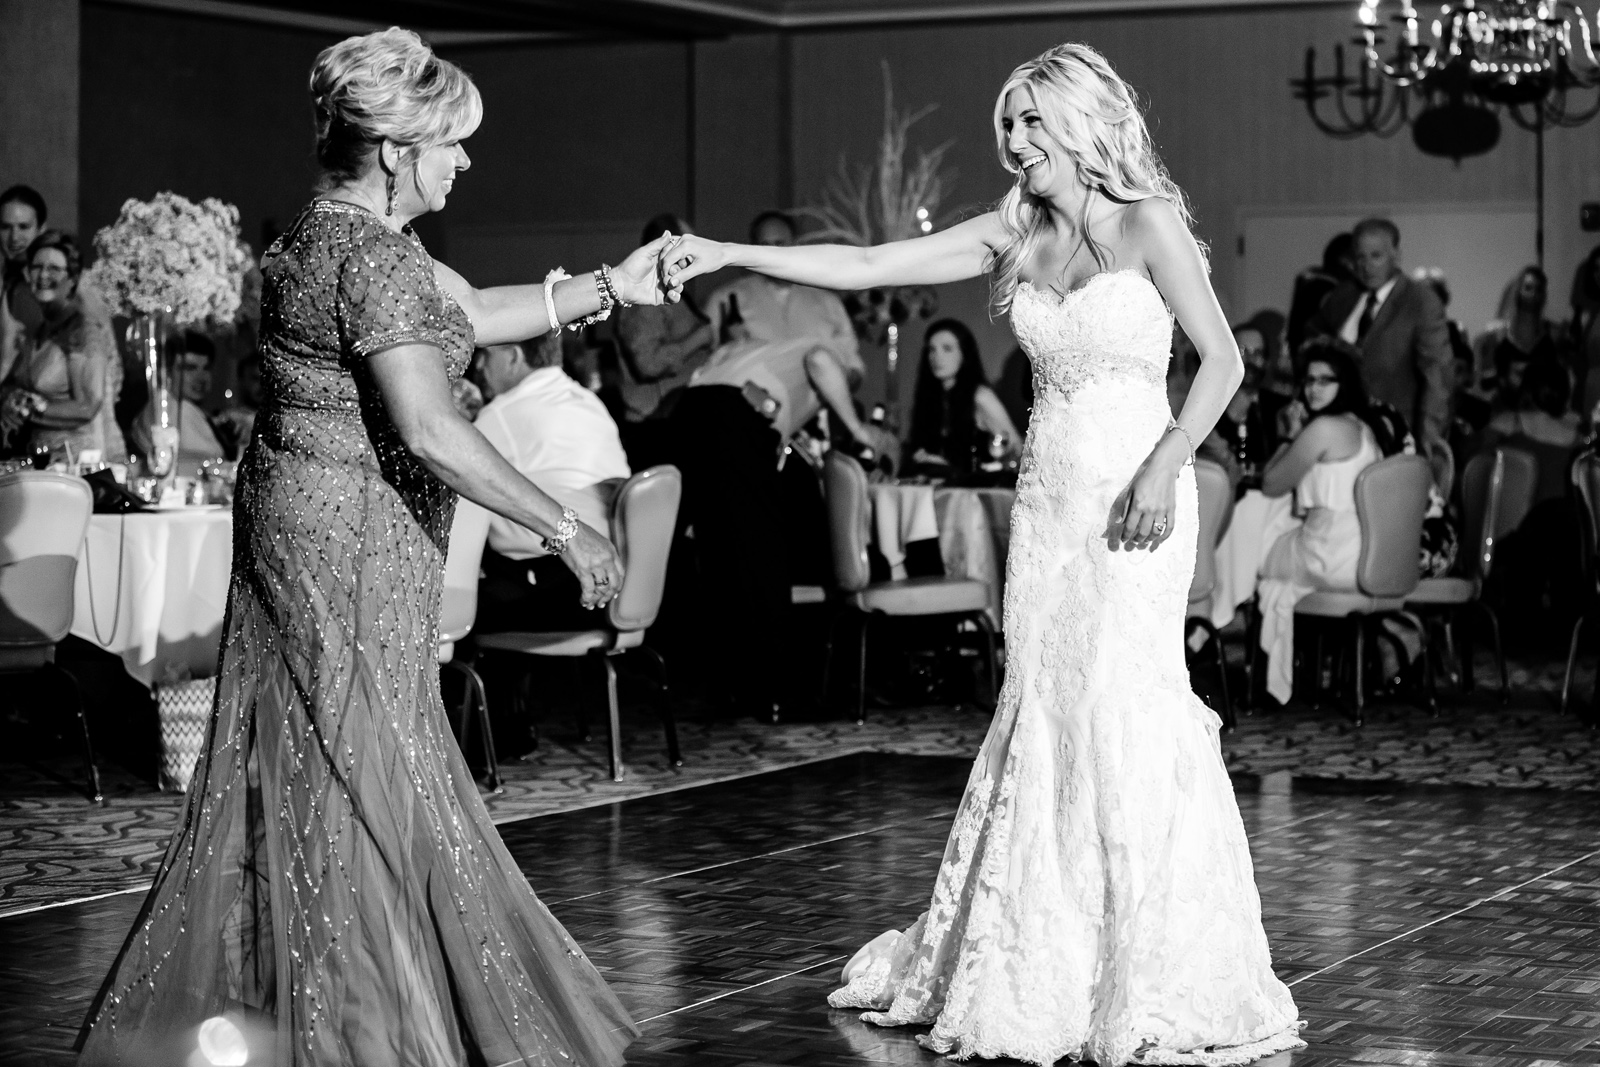 St. Clair Country Club Wedding Reception Photos with St. Louis Wedding Photographers by Oldani Photography 35.jpg